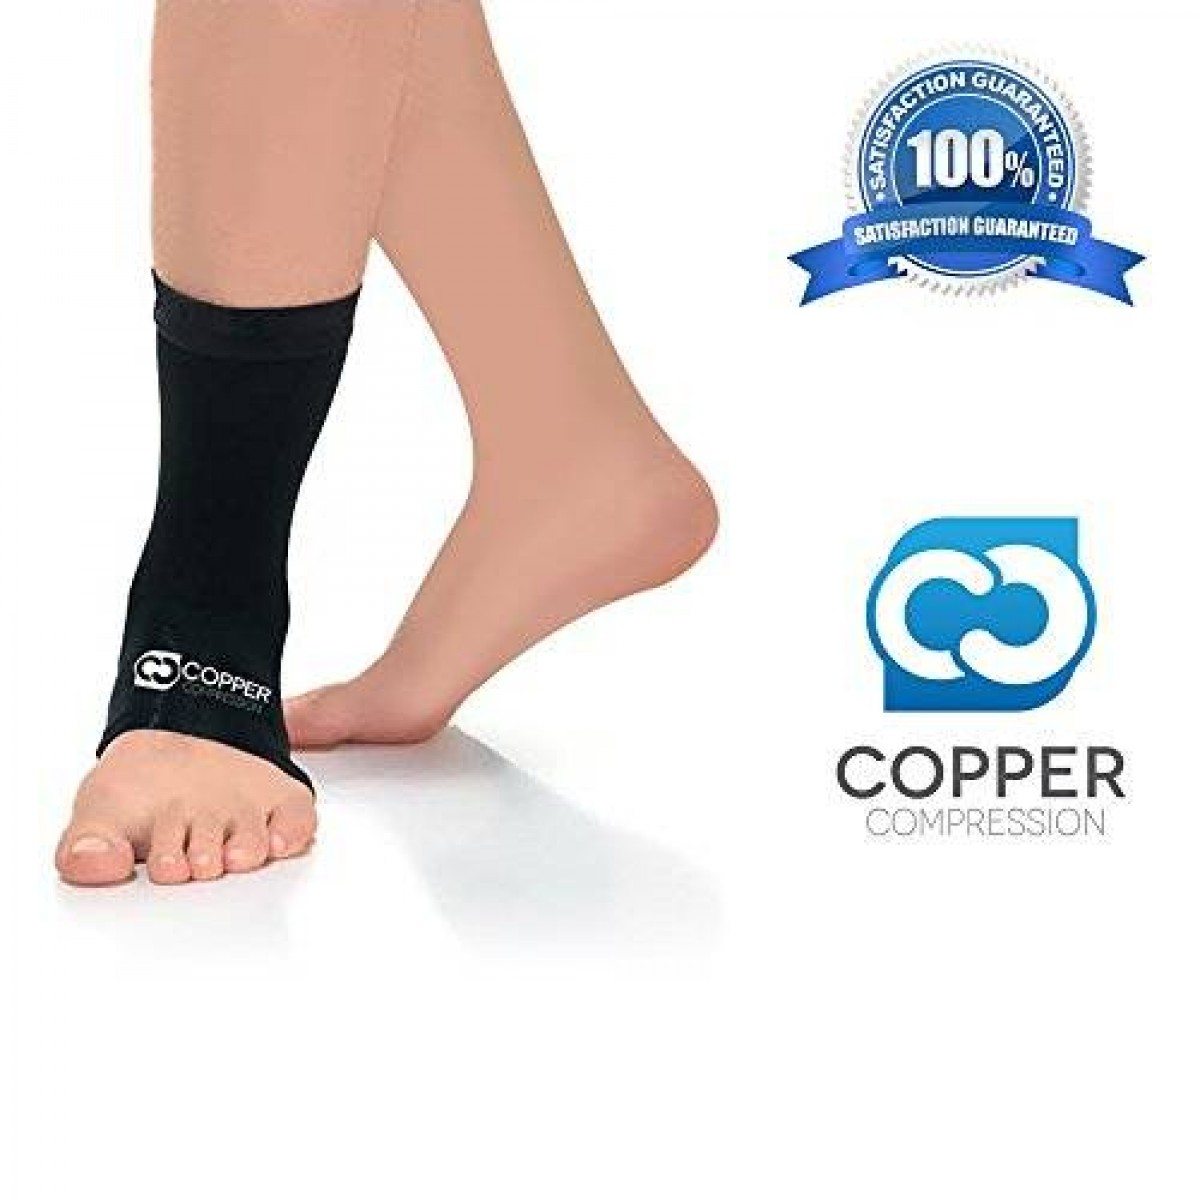 816745be18 Copper Compression Recovery Ankle Sleeve - Highest Copper ...